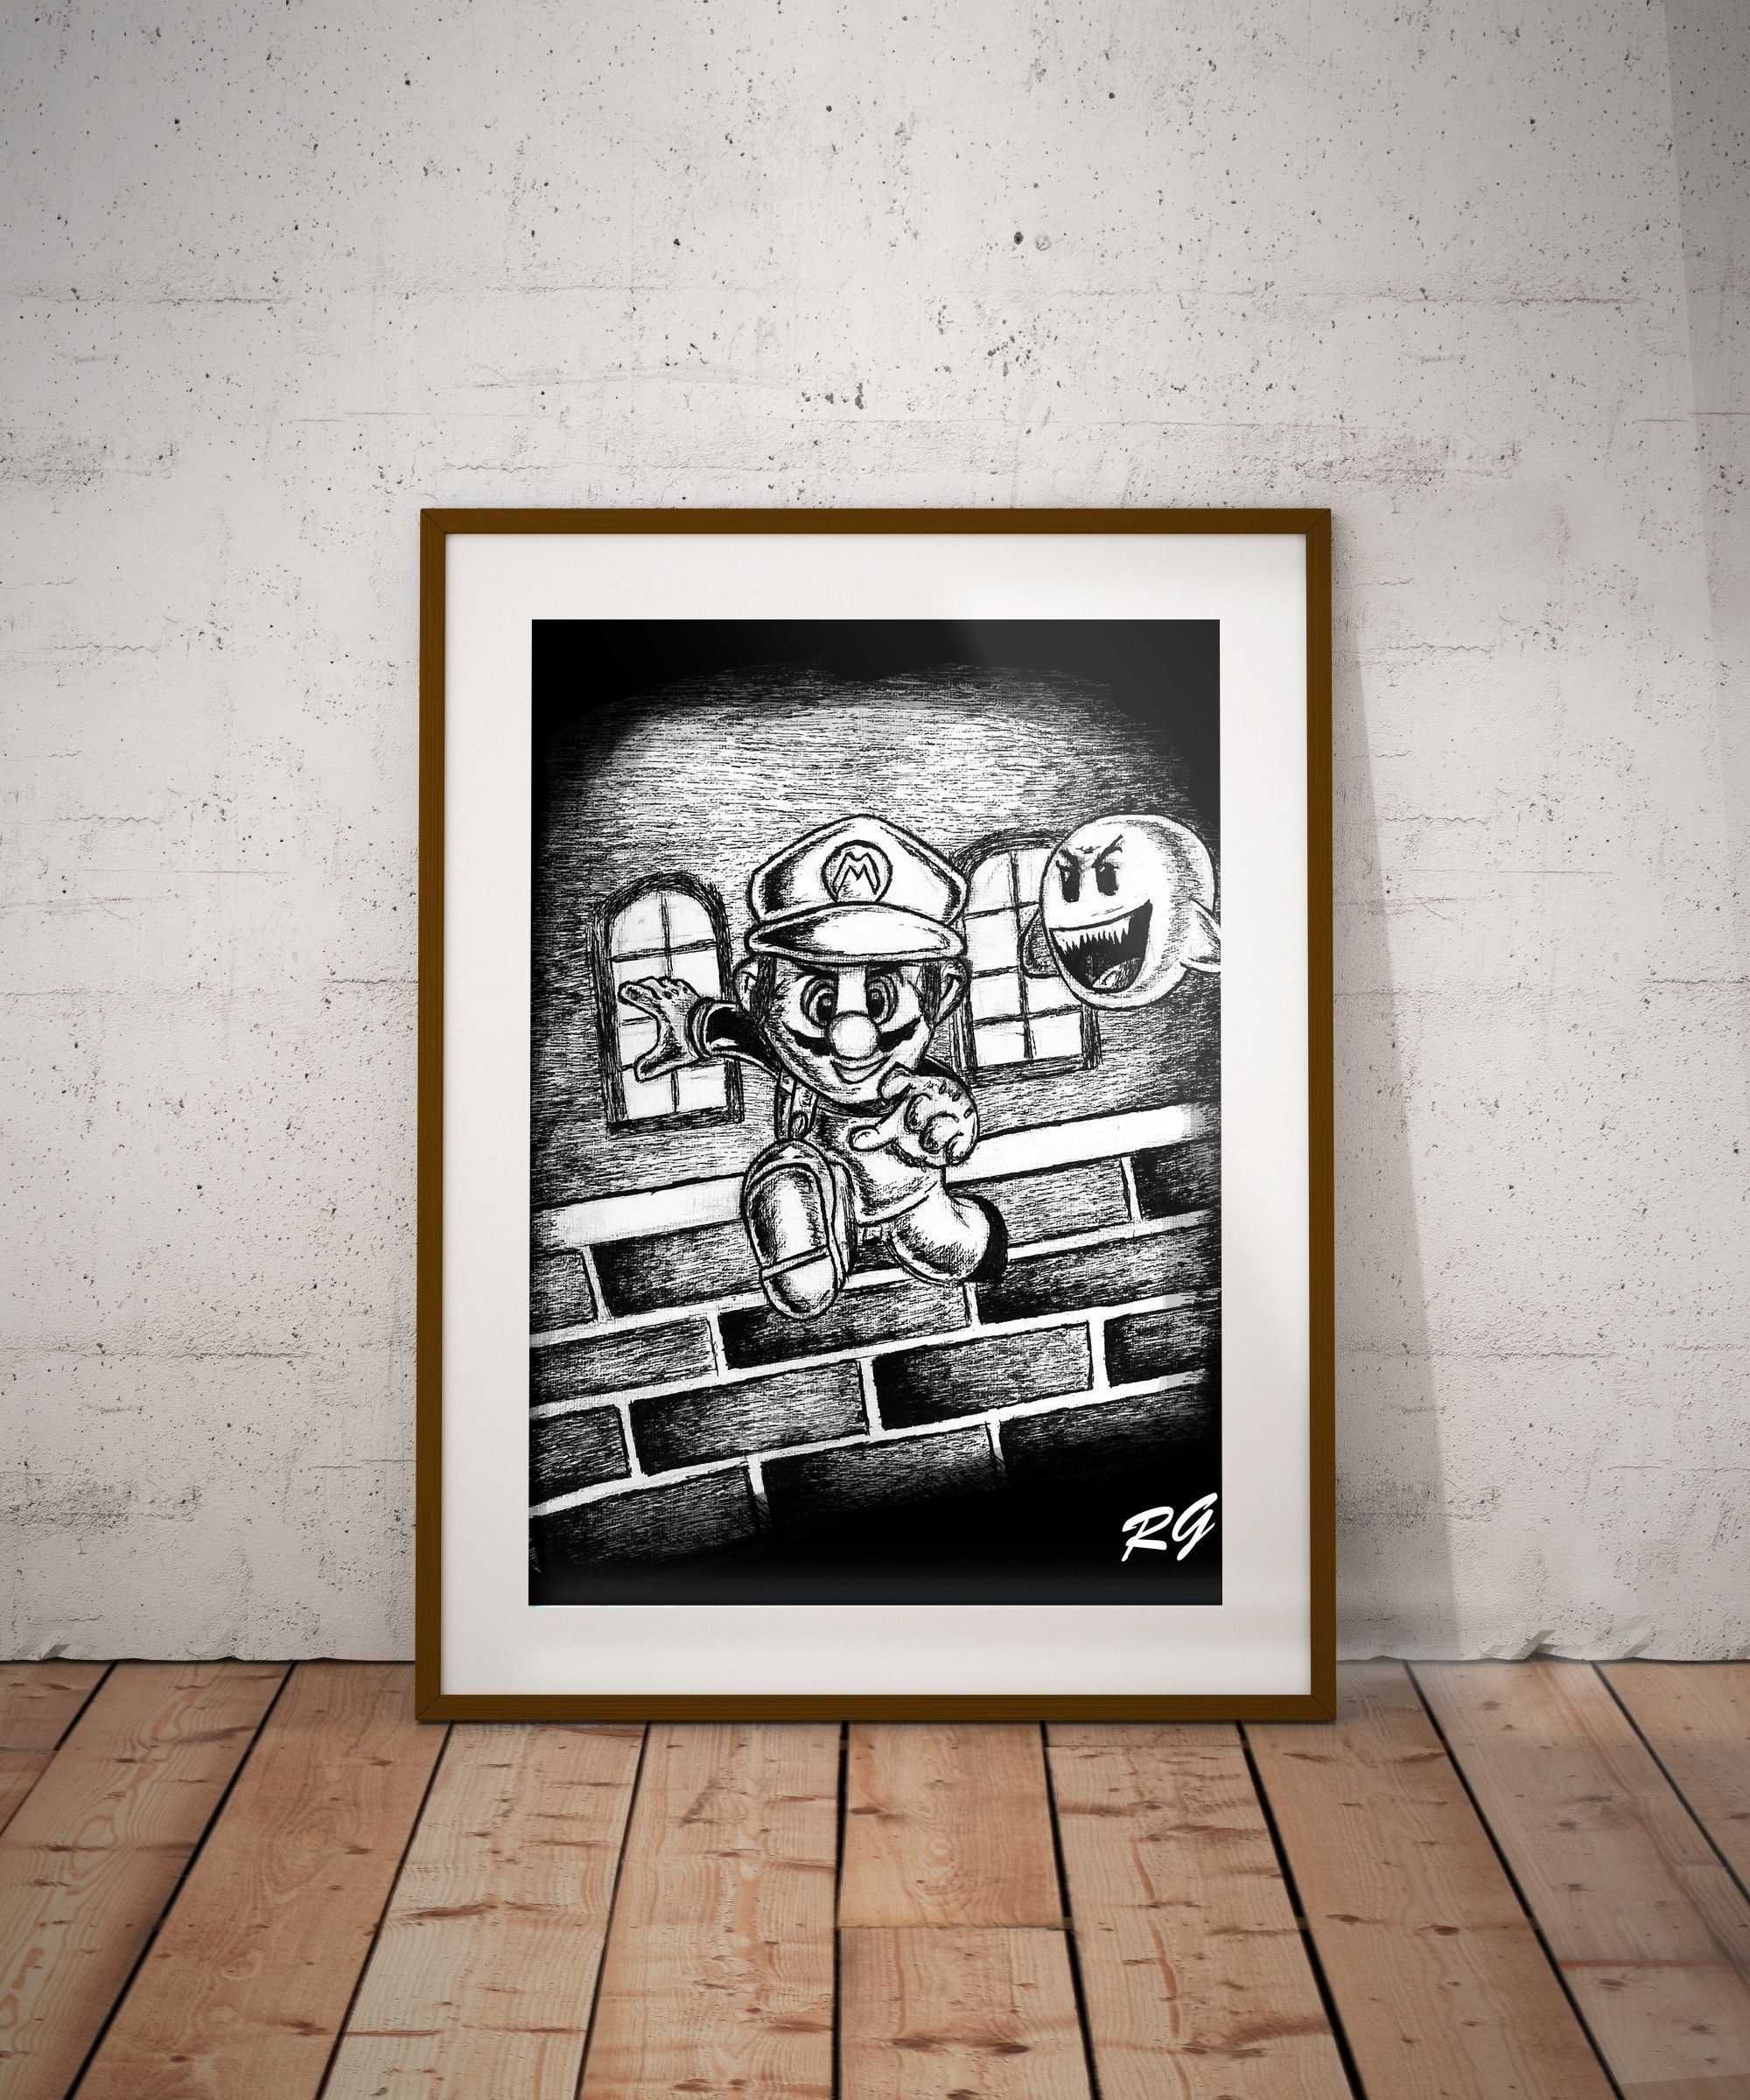 Super Mario Nintendo Video Game Wall Art Print | Products Pertaining To Latest Nintendo Wall Art (View 16 of 20)